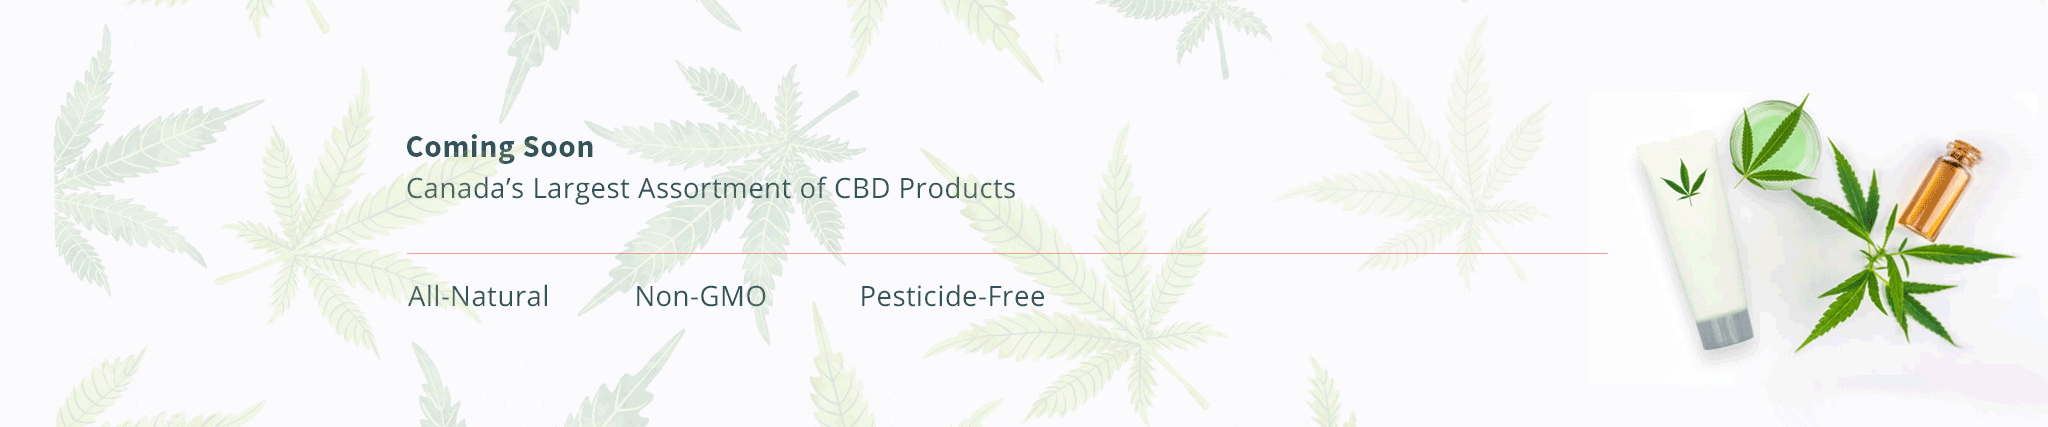 CBD Coming Soon